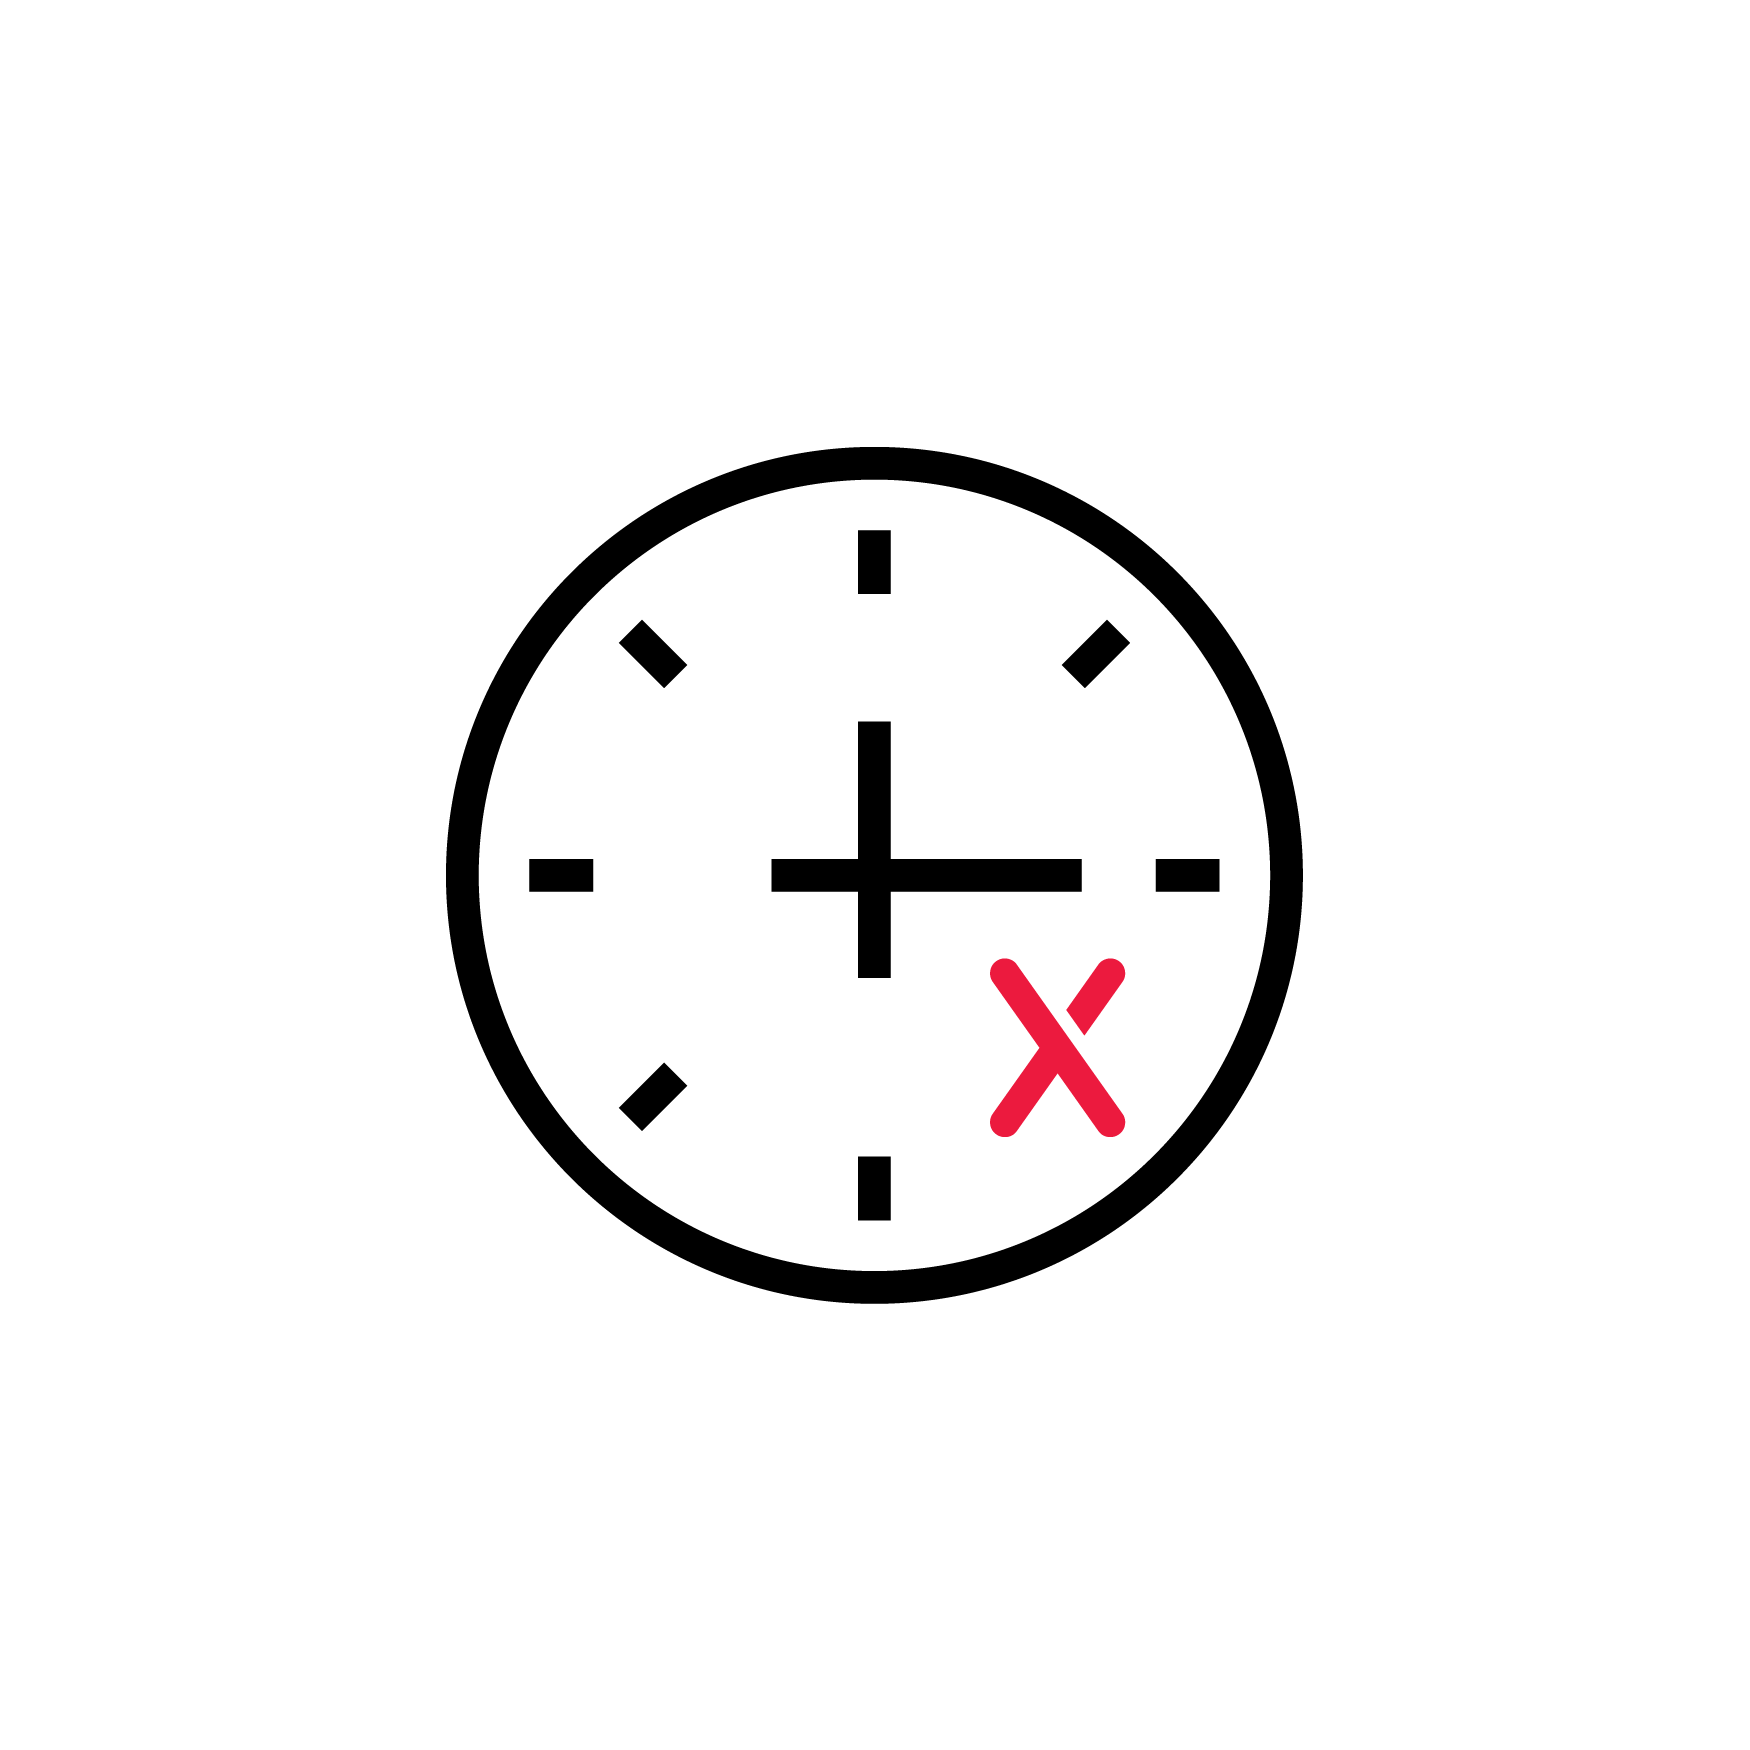 time-01-01.png